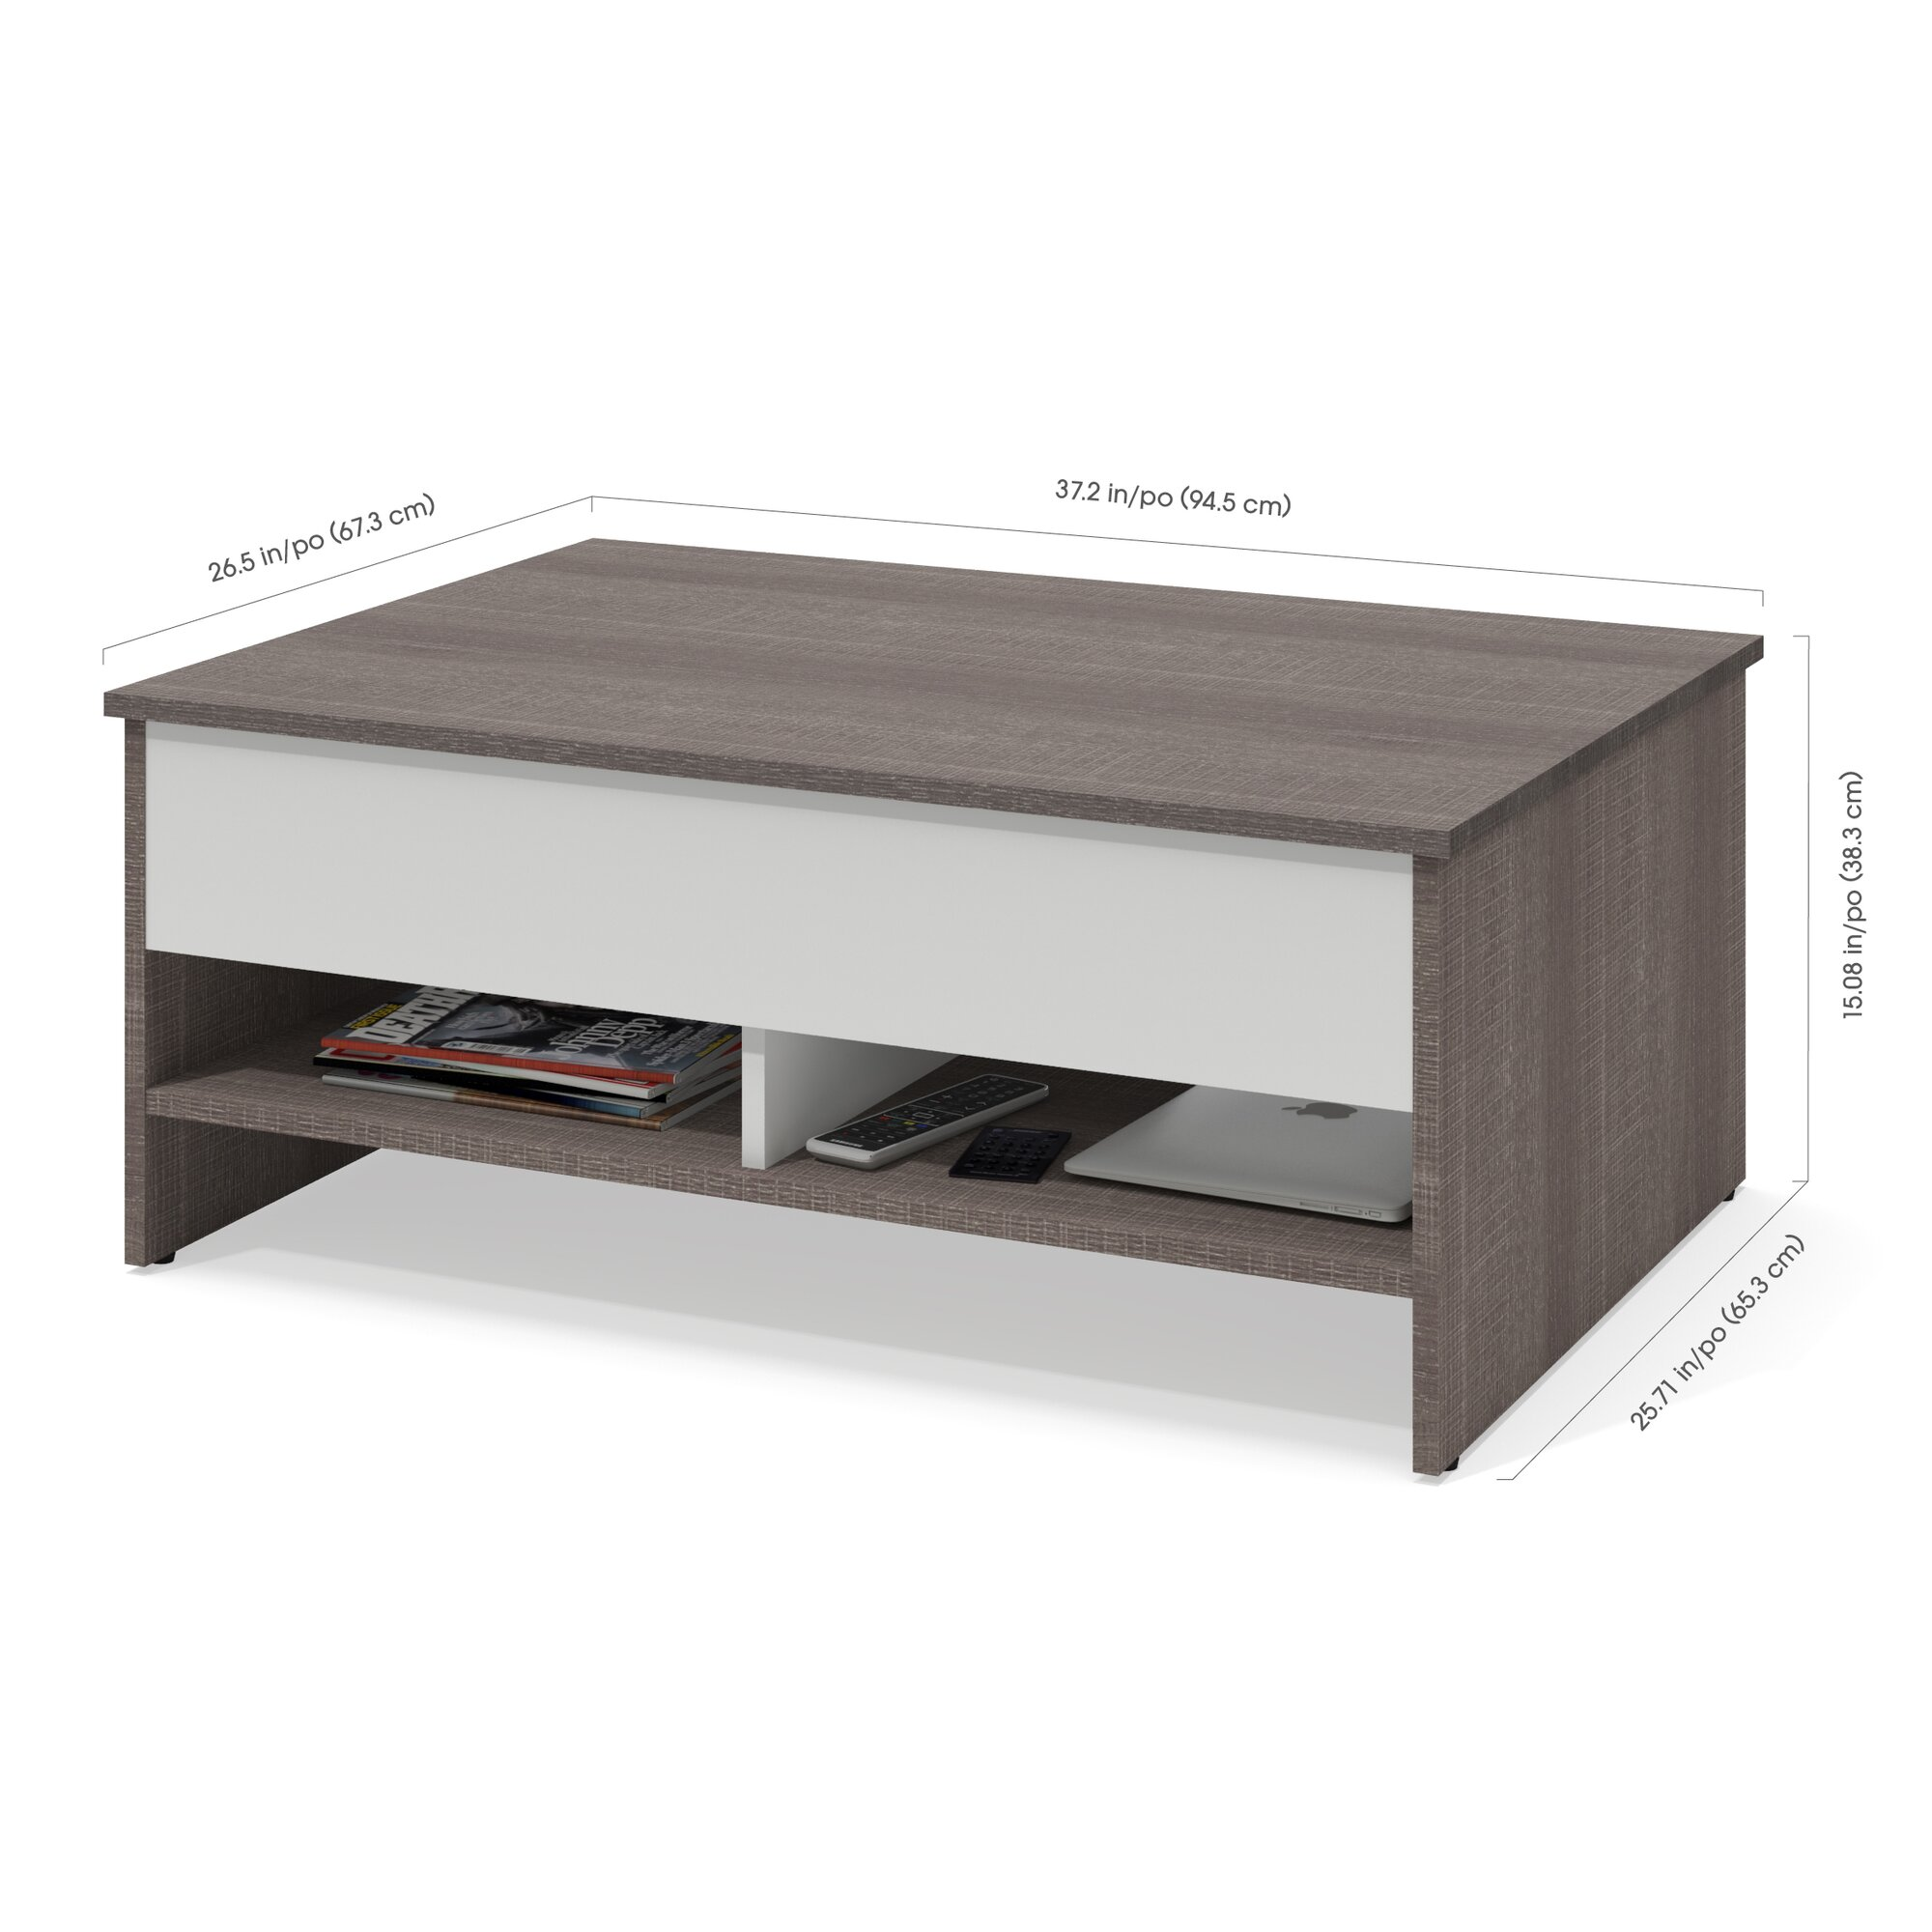 Where To Buy Lift Top Coffee Tables With Storage: Frederick Storage Coffee Table With Lift Top & Reviews